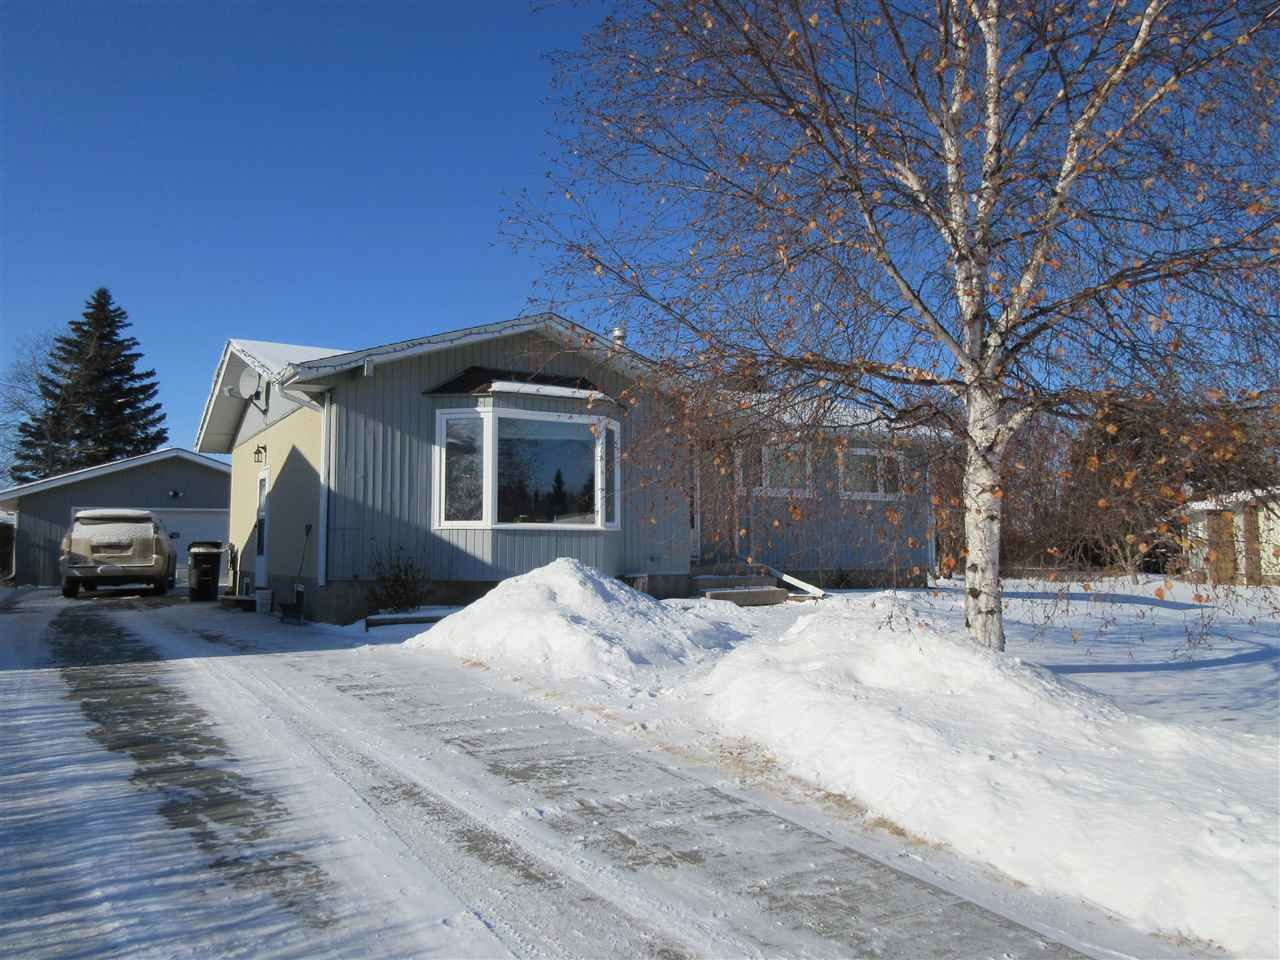 Main Photo: 5315 60 Street: Redwater House for sale : MLS®# E4227452